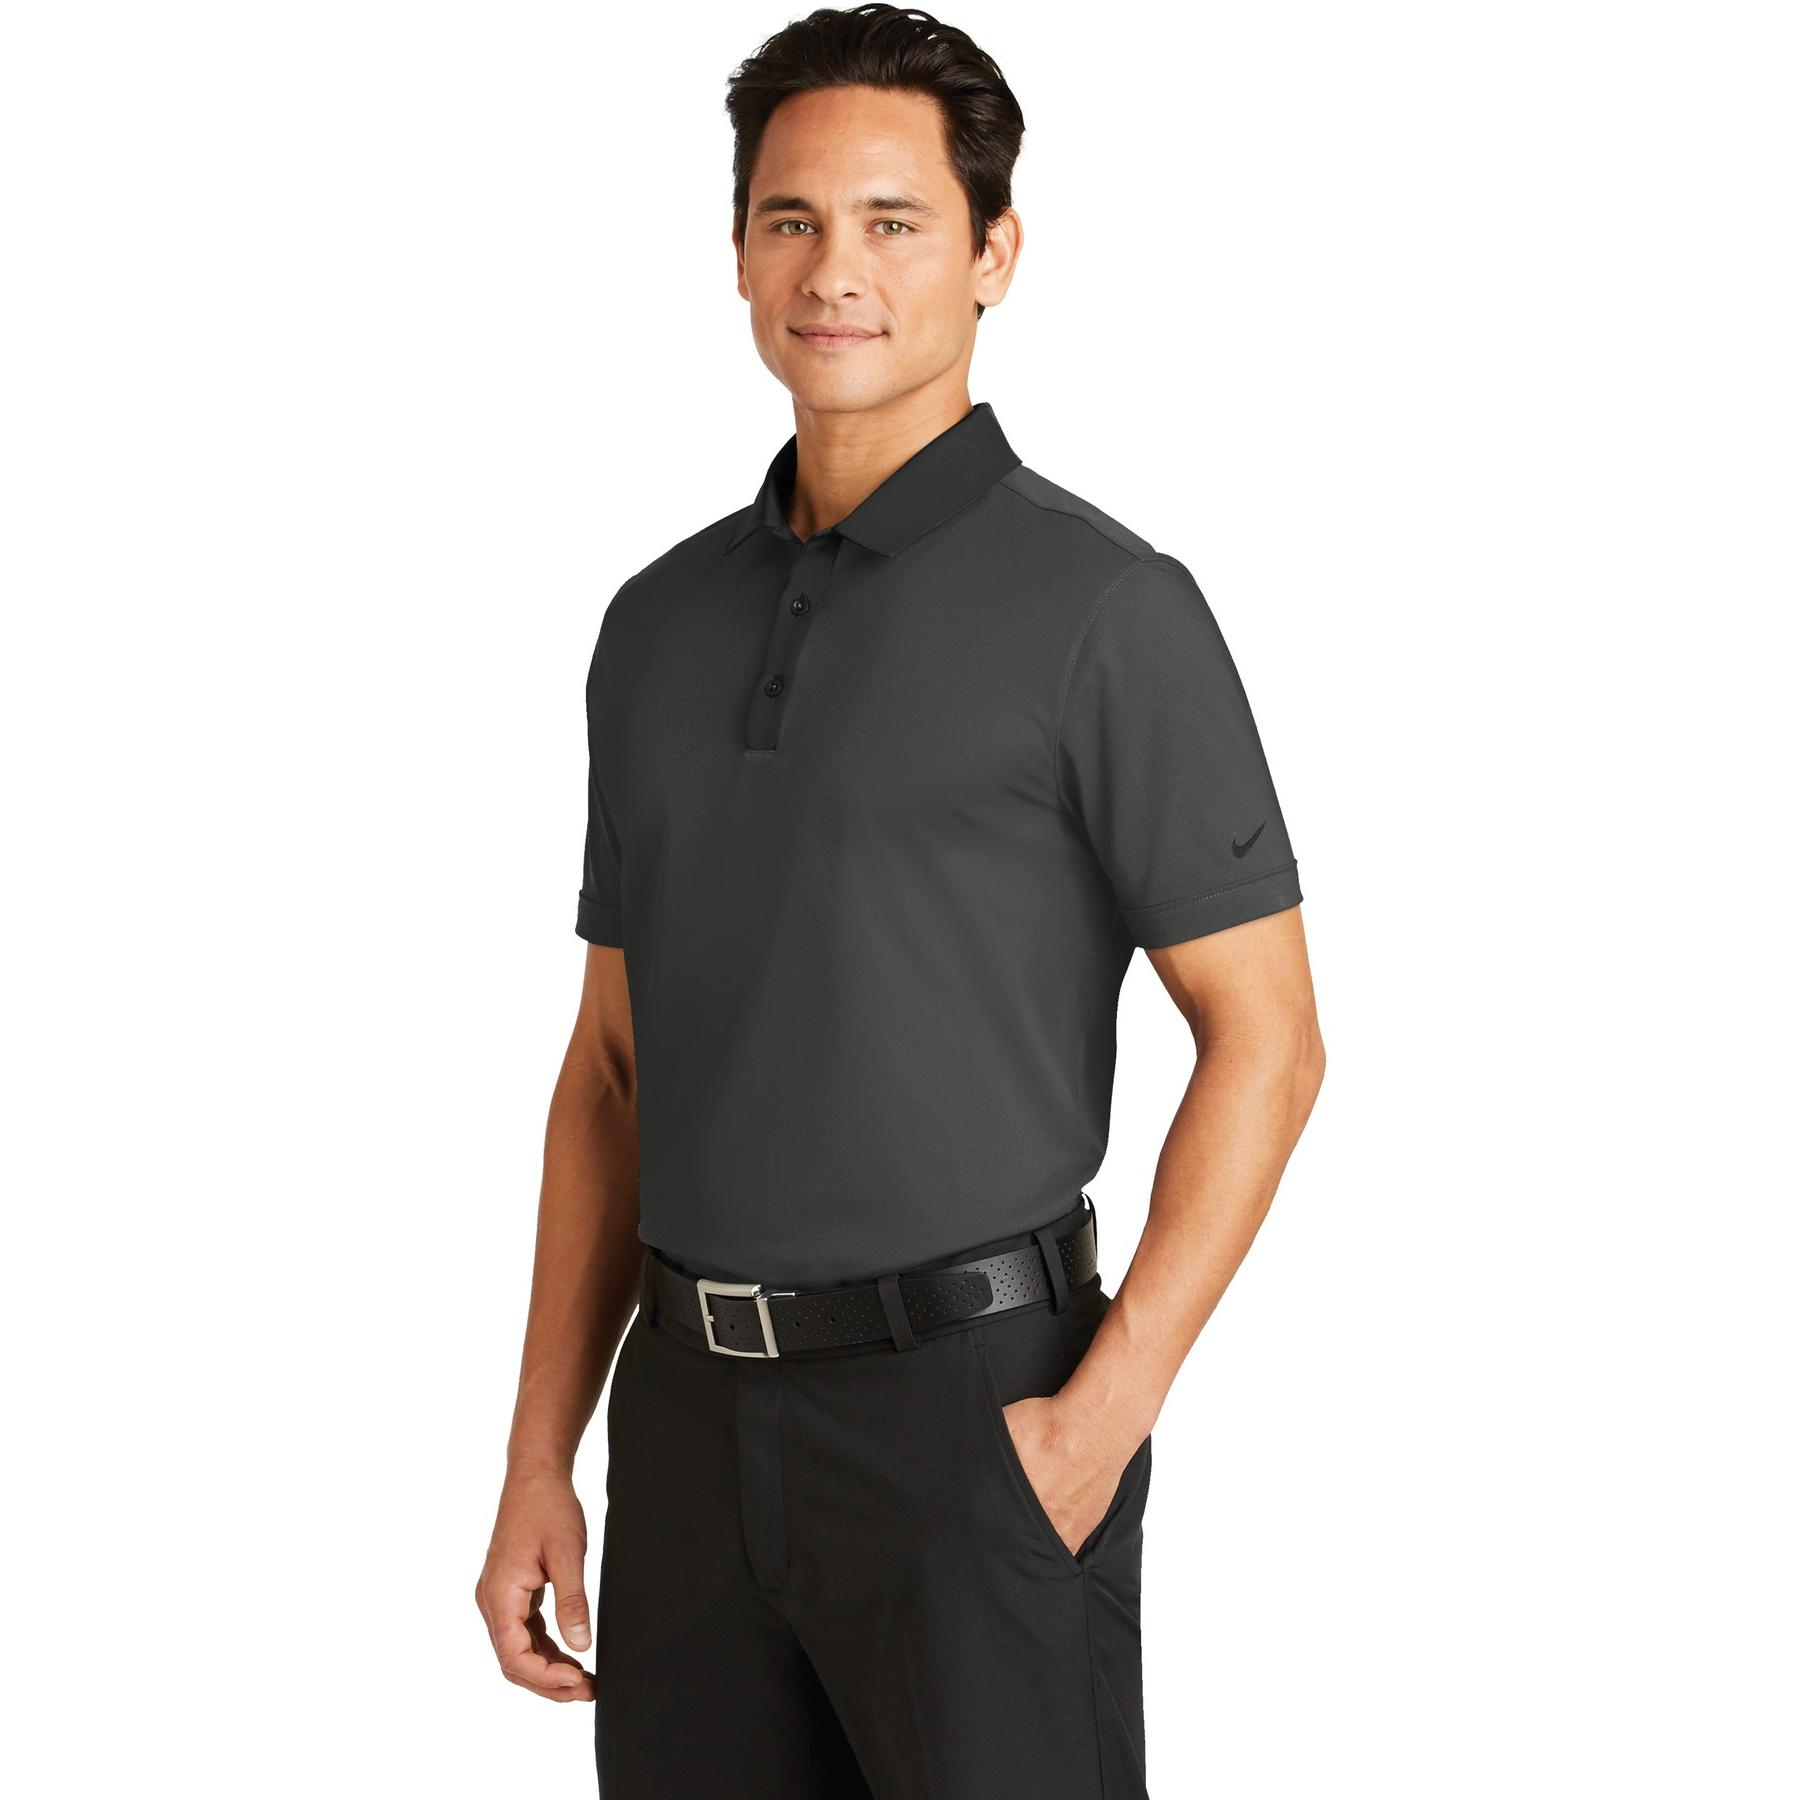 Nike golf 779798 dri fit heather pique modern fit polo Modern fit golf shirt